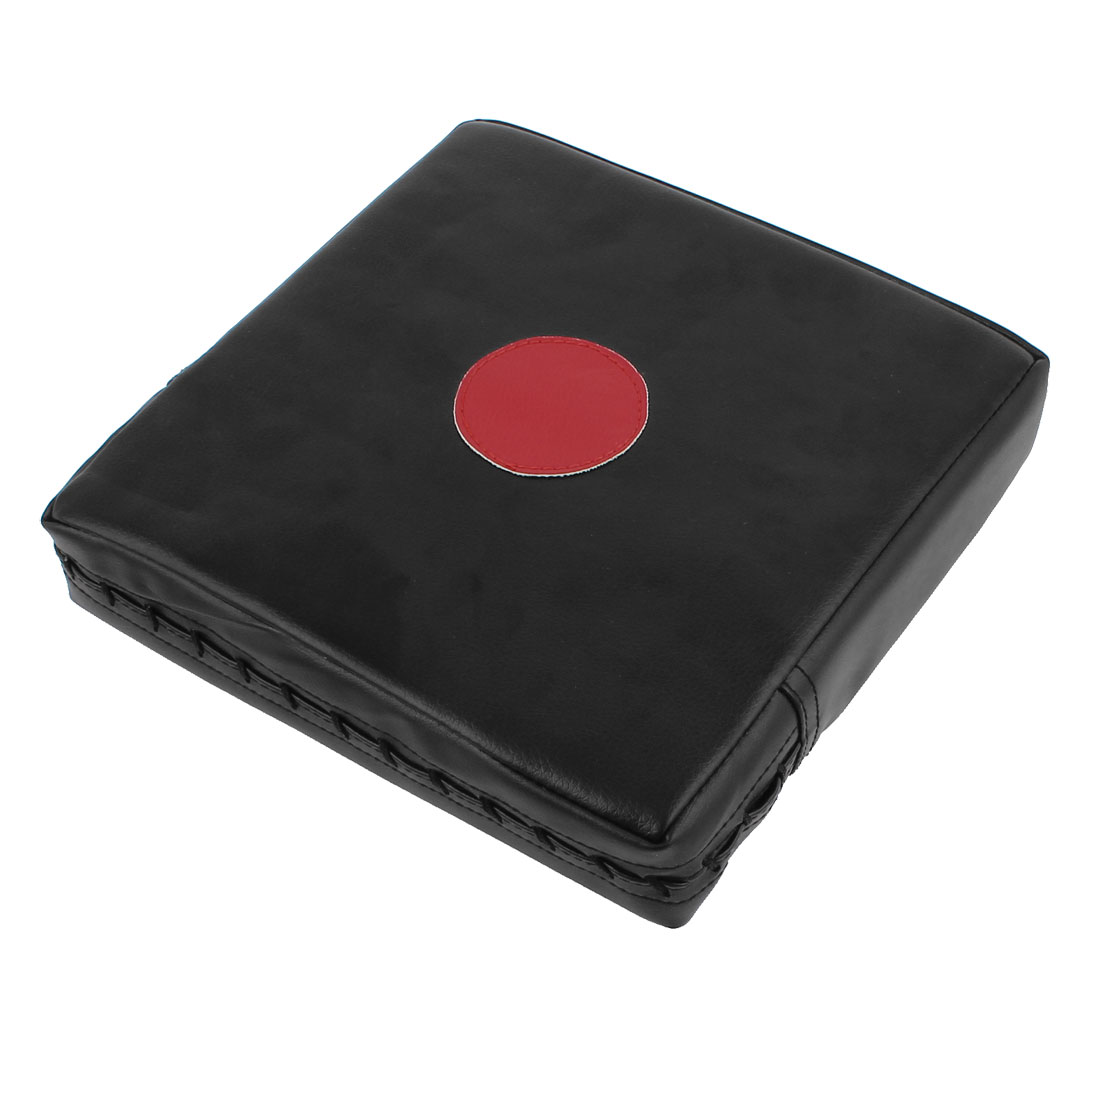 24cmx24cmx5cm Boxing Faux Leather Coated Wall Punch Pad Bag Target Black Red